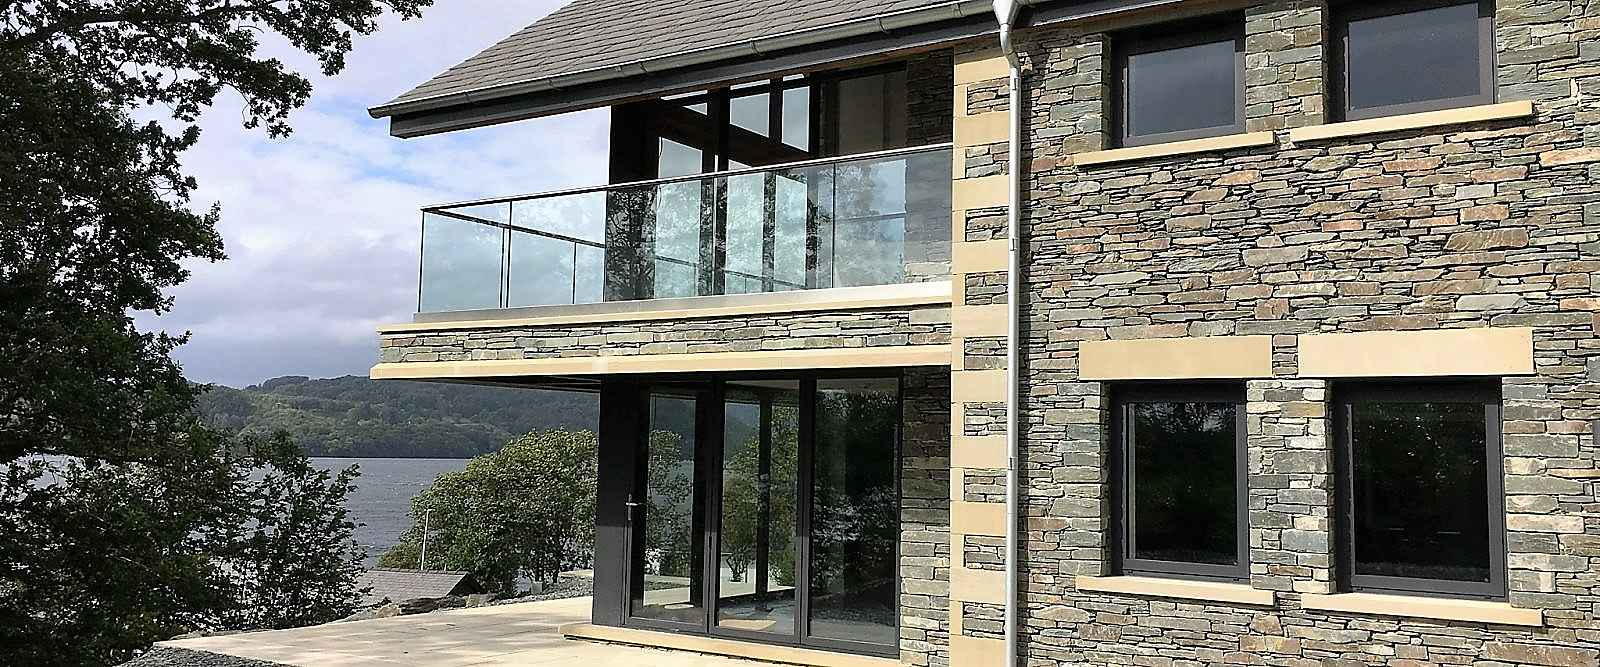 Aluminium Bi-fold doors installed in this stunning Lake District house by Marlin Windows